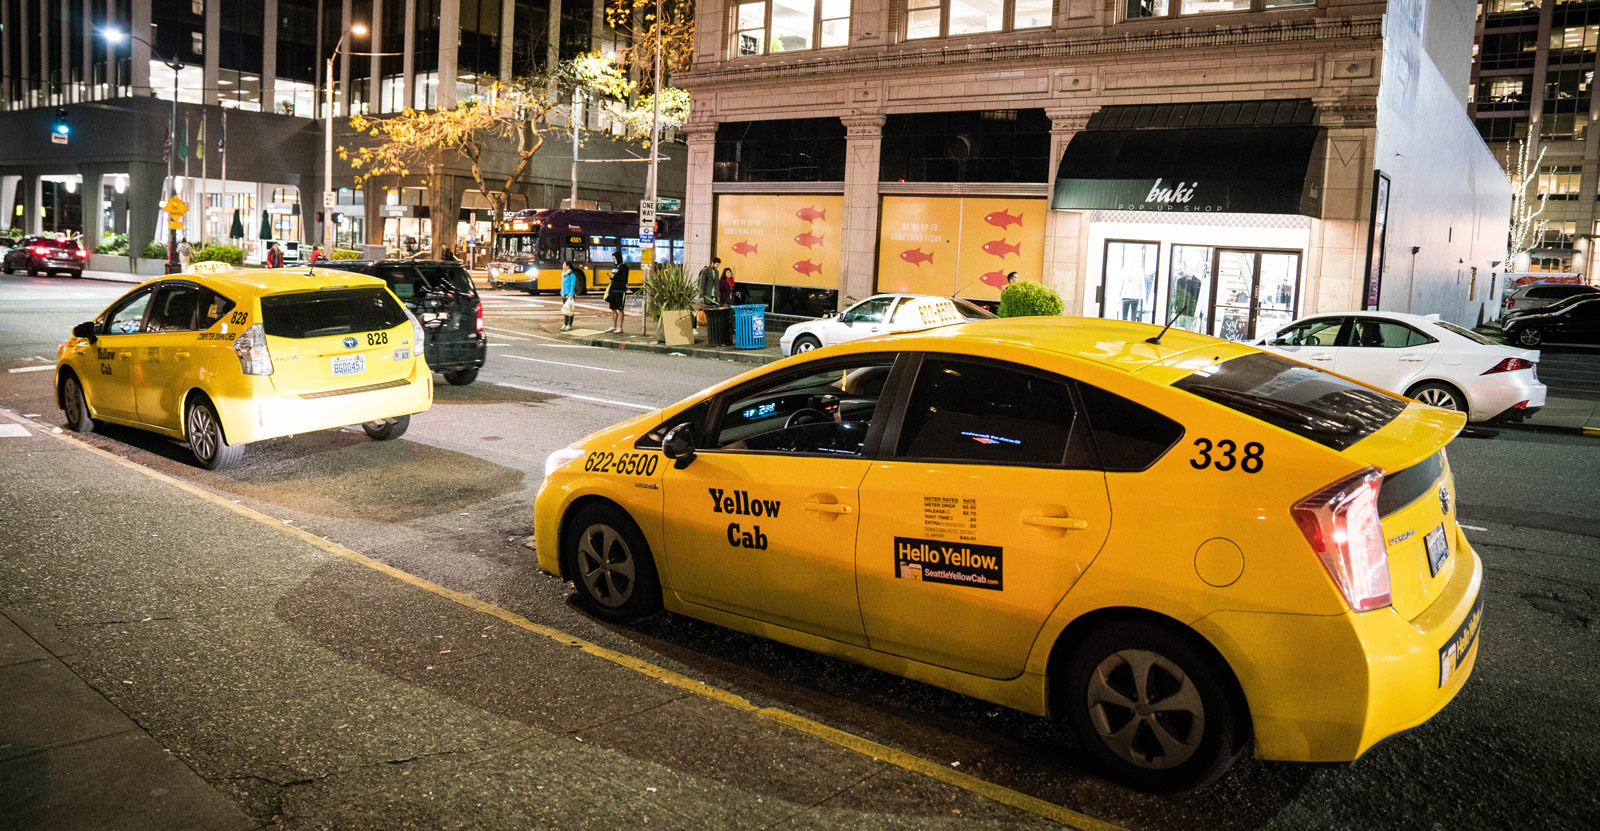 SYC-photo-5 | Seattle Yellow Cab : Taxicabs and Wheelchair ...